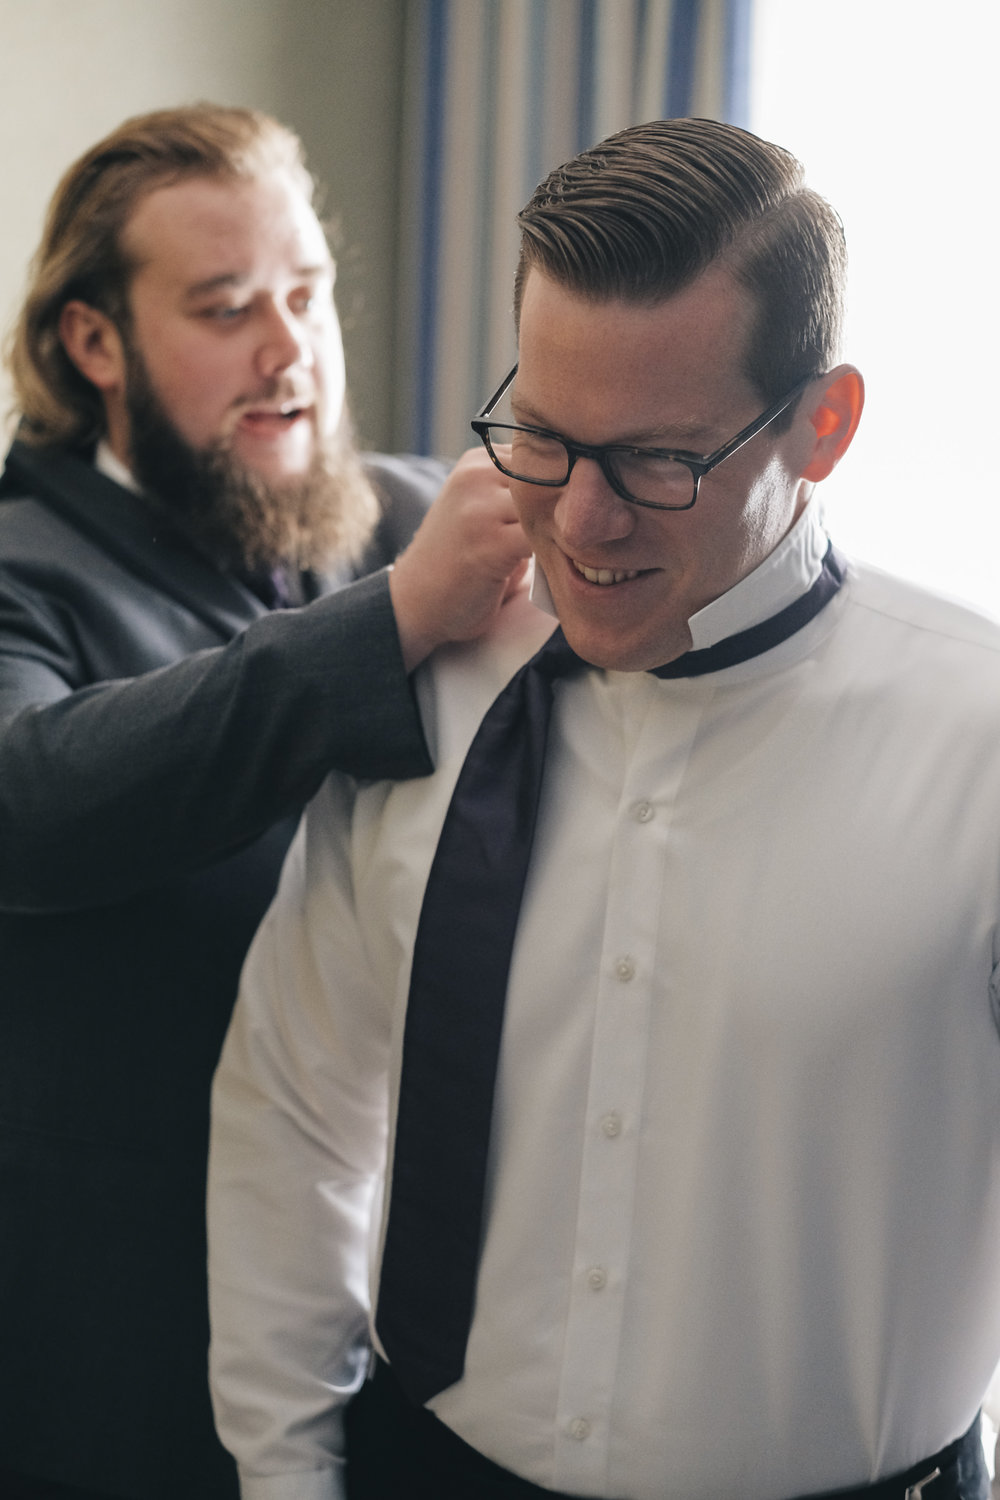 Best man helps groom get ready before his wedding ceremony in Port Clinton, Ohio near Lake Erie